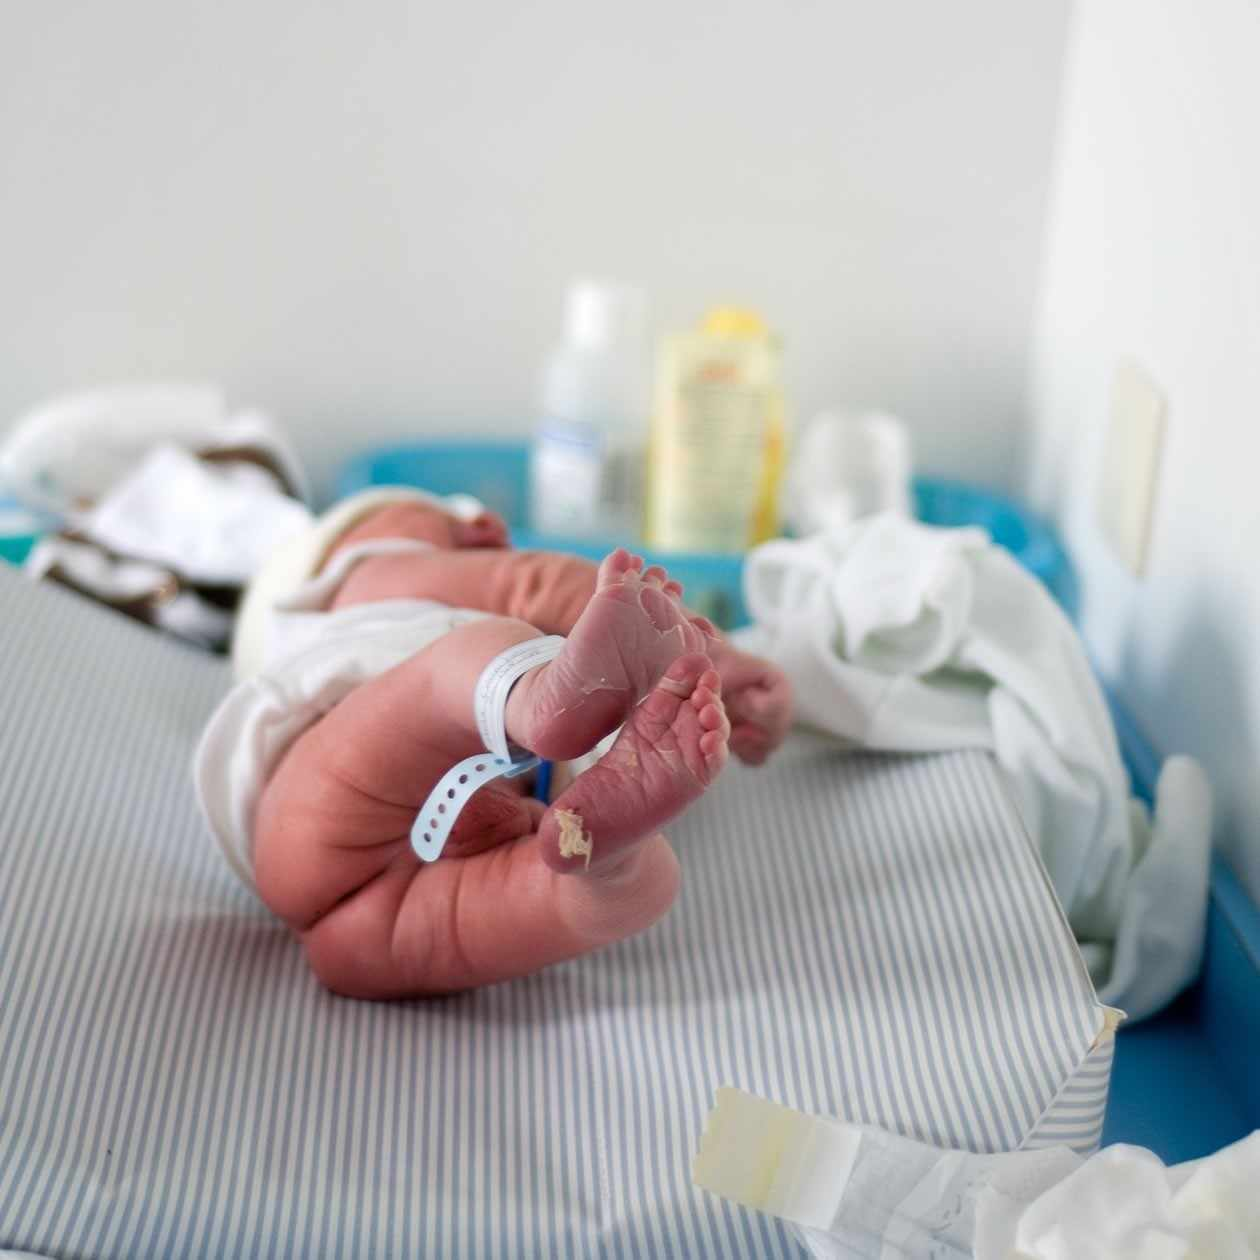 screening-babies-for-heart-defects-could-save-lives_1560